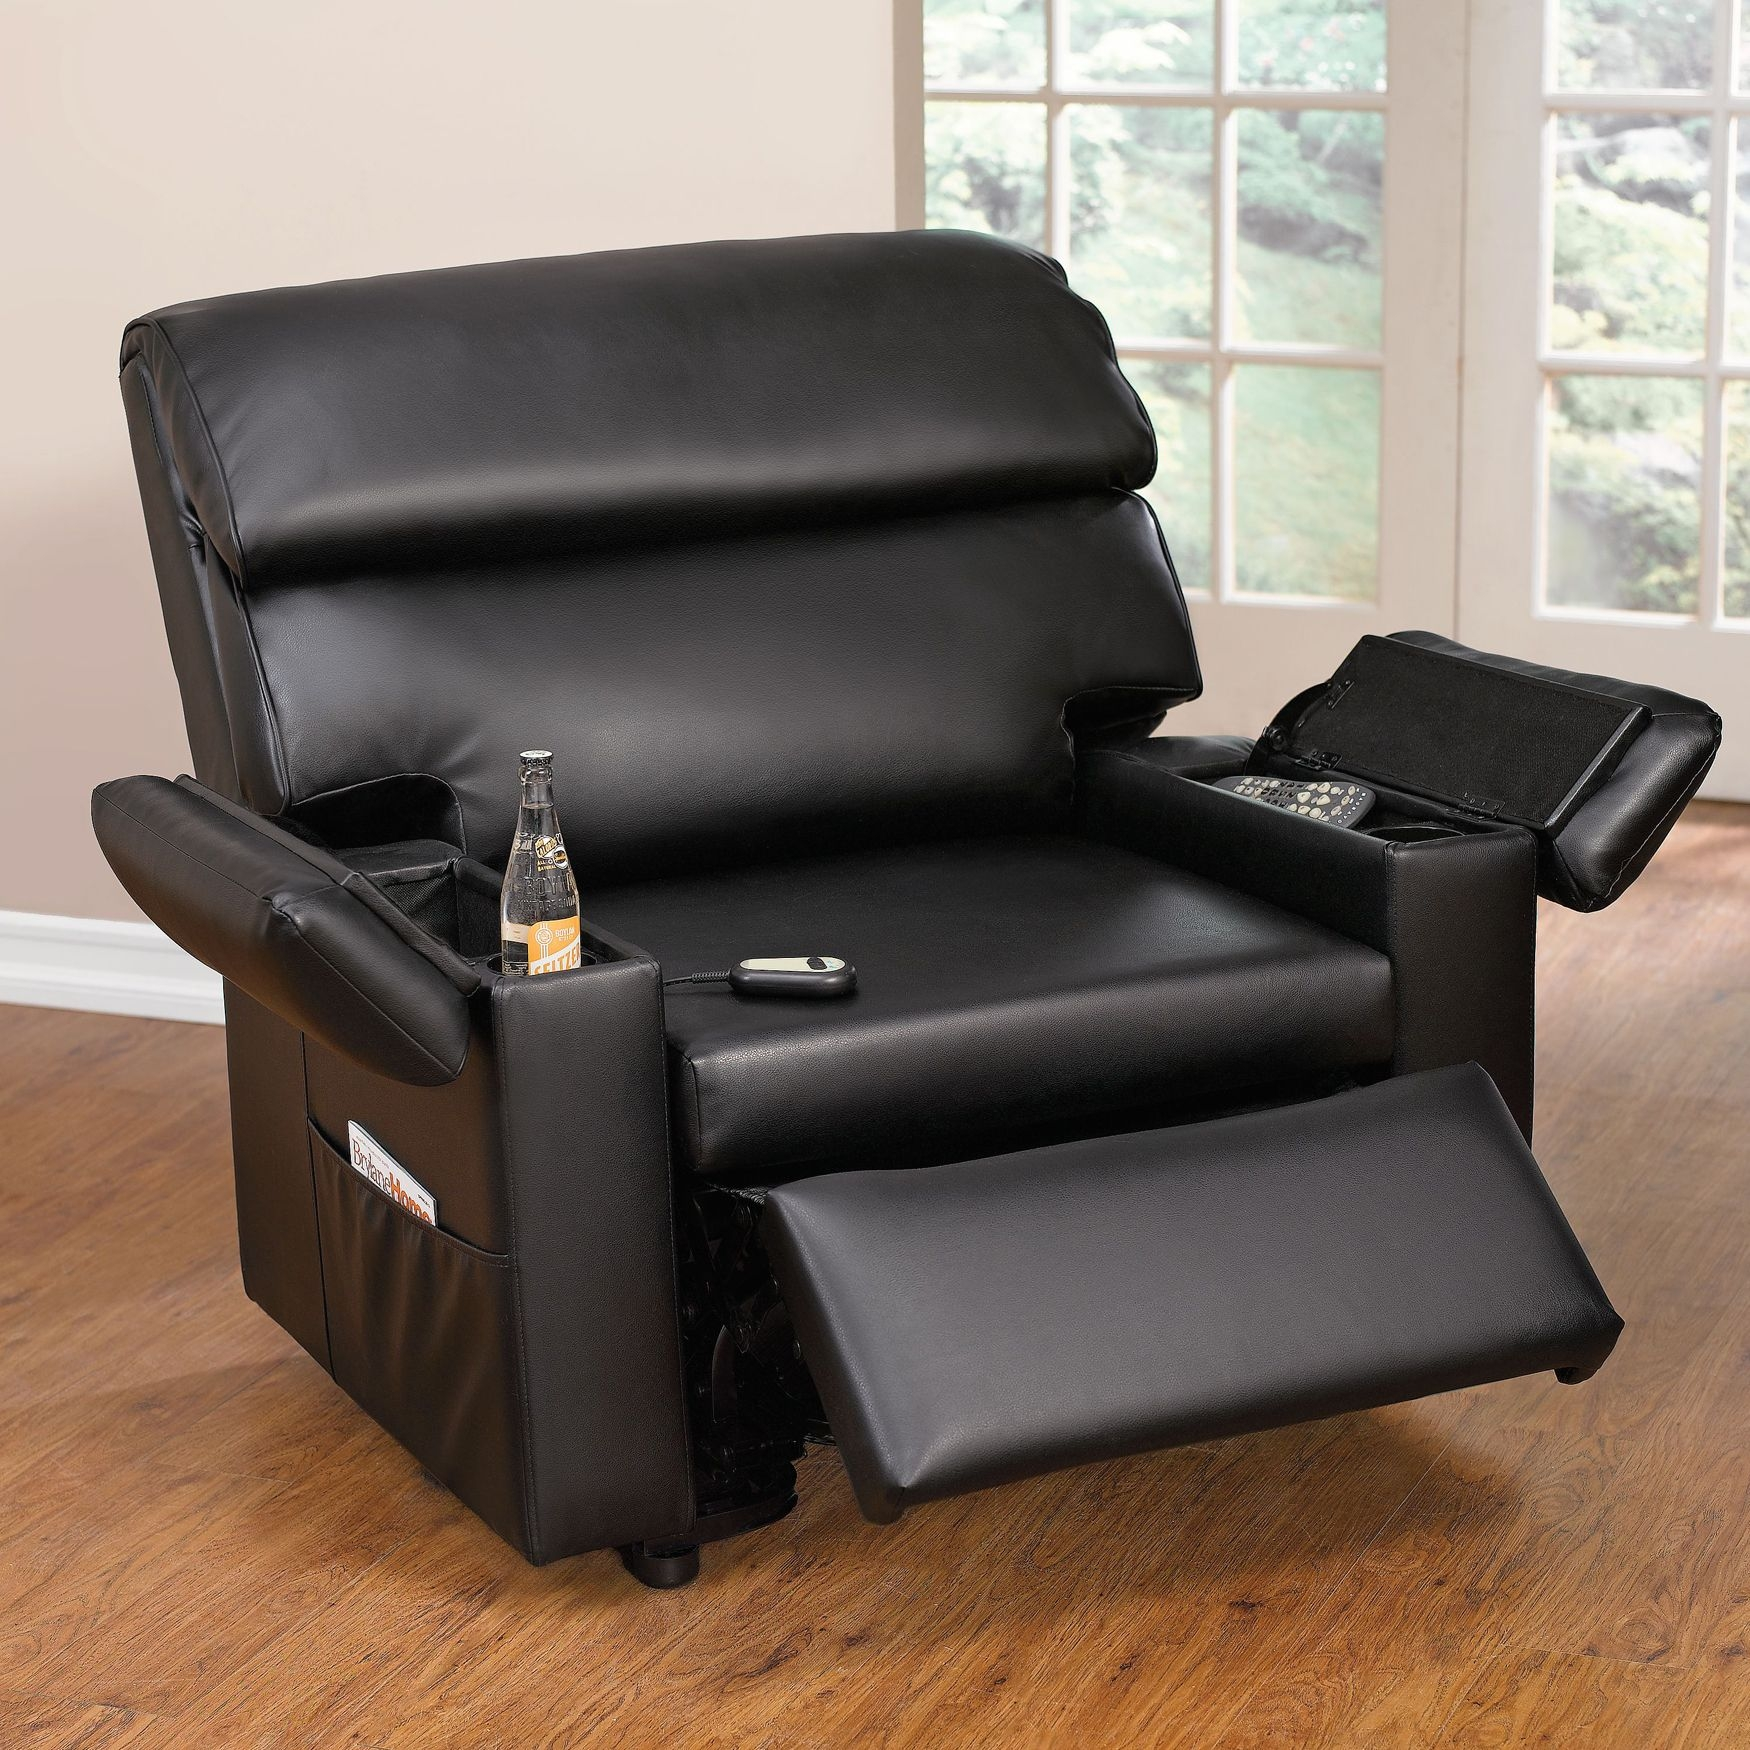 Plus+Size Living Brylanehome Extra Wide Leather Look Power Lift Chair With  Storage